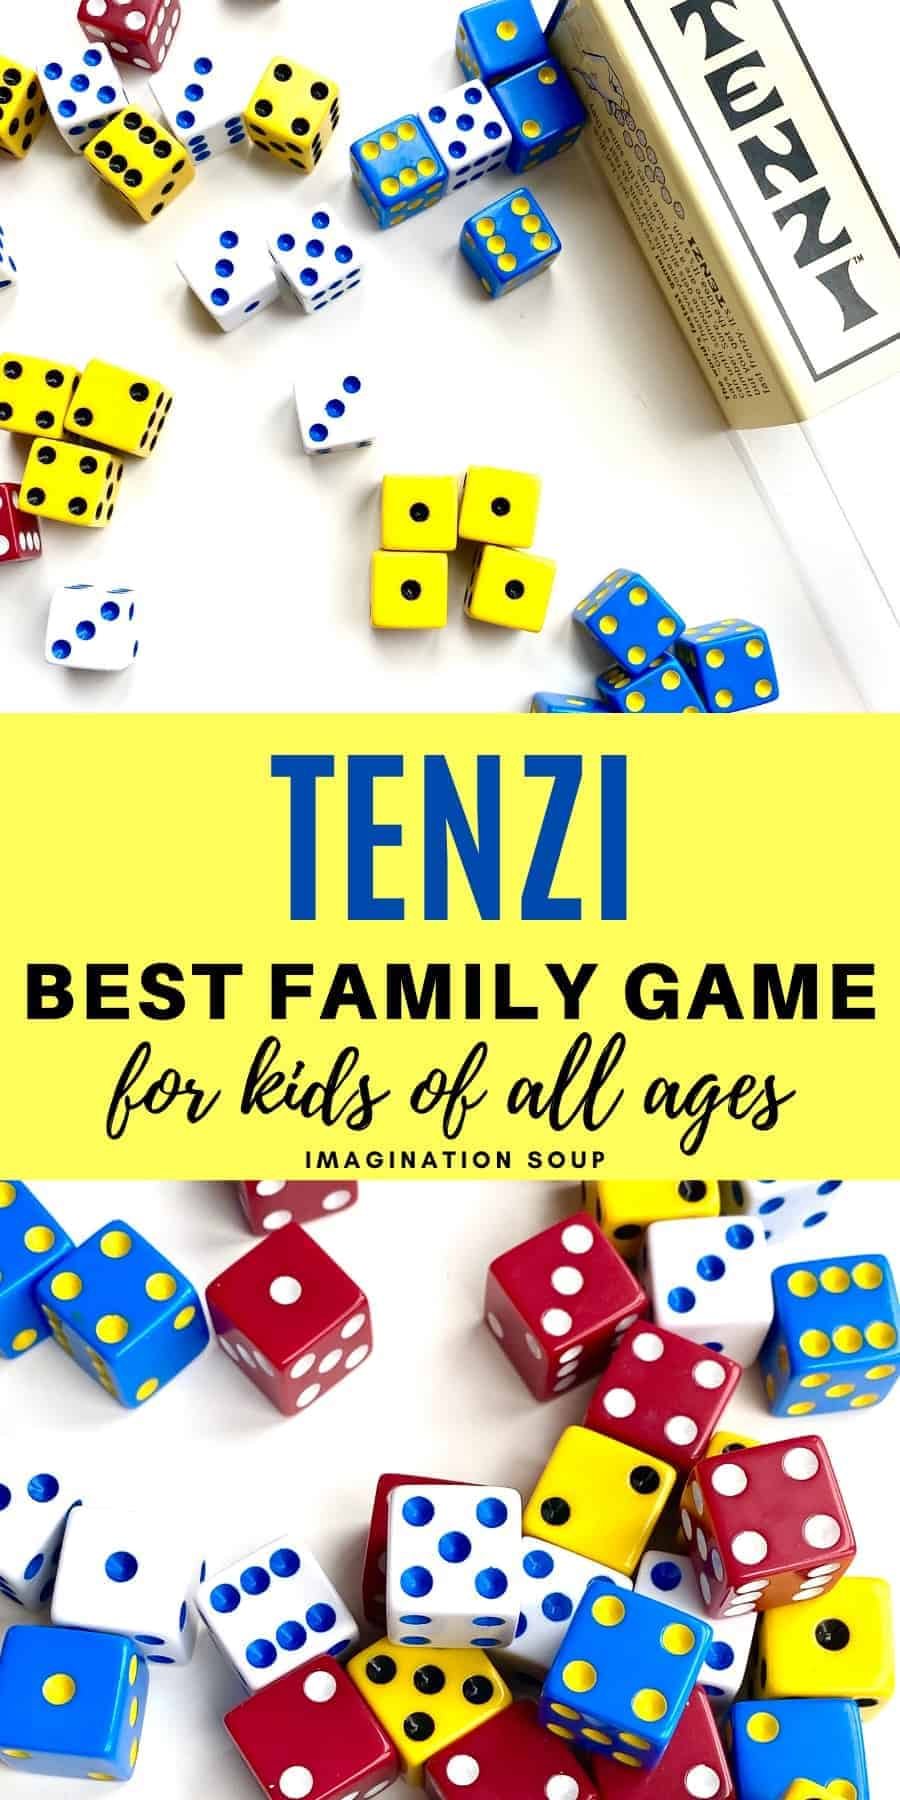 Tenzi is the best family game for kids of all ages